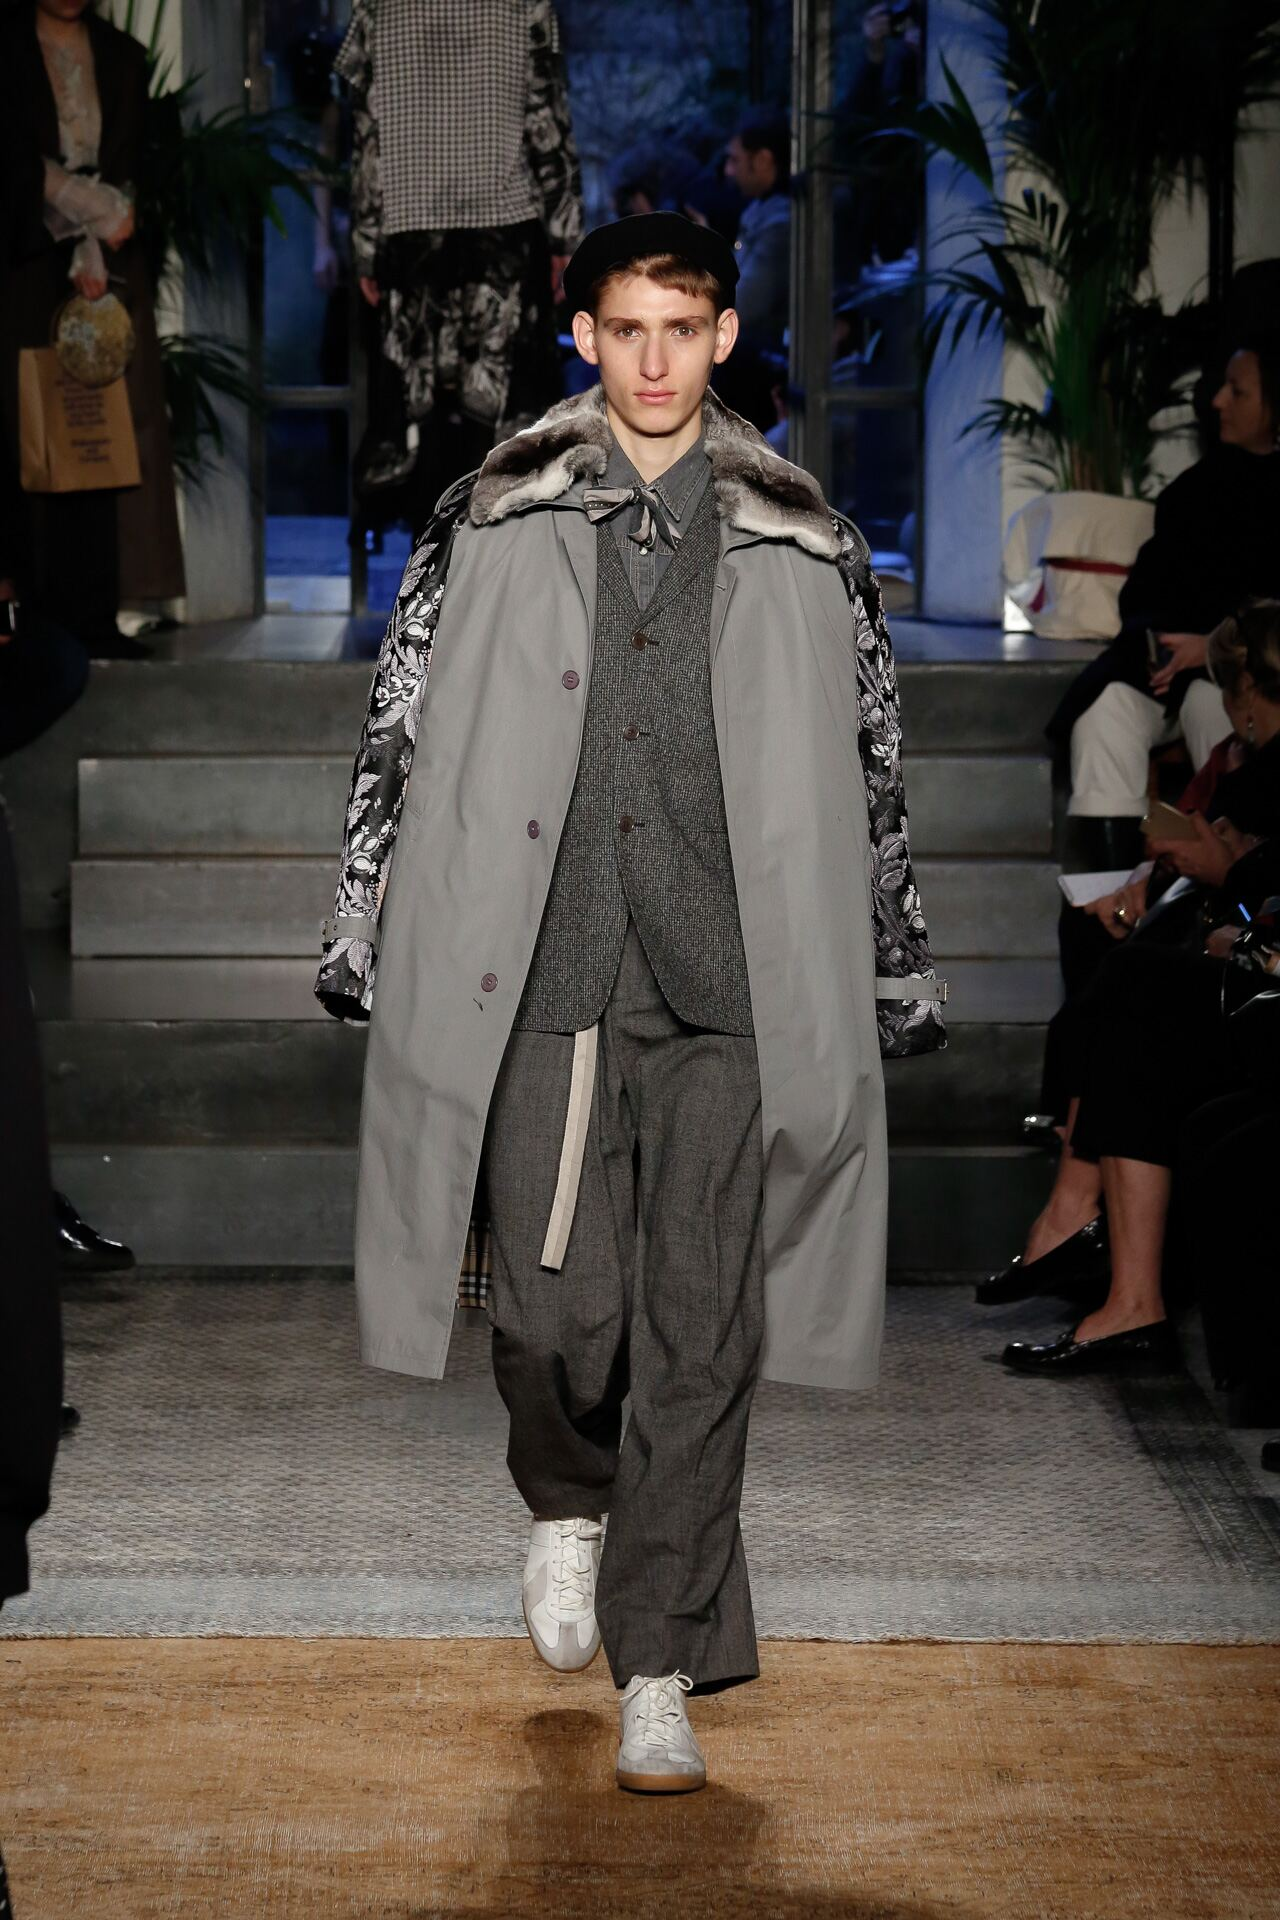 Menswear Fashion 2019-20 Catwalk Antonio Marras